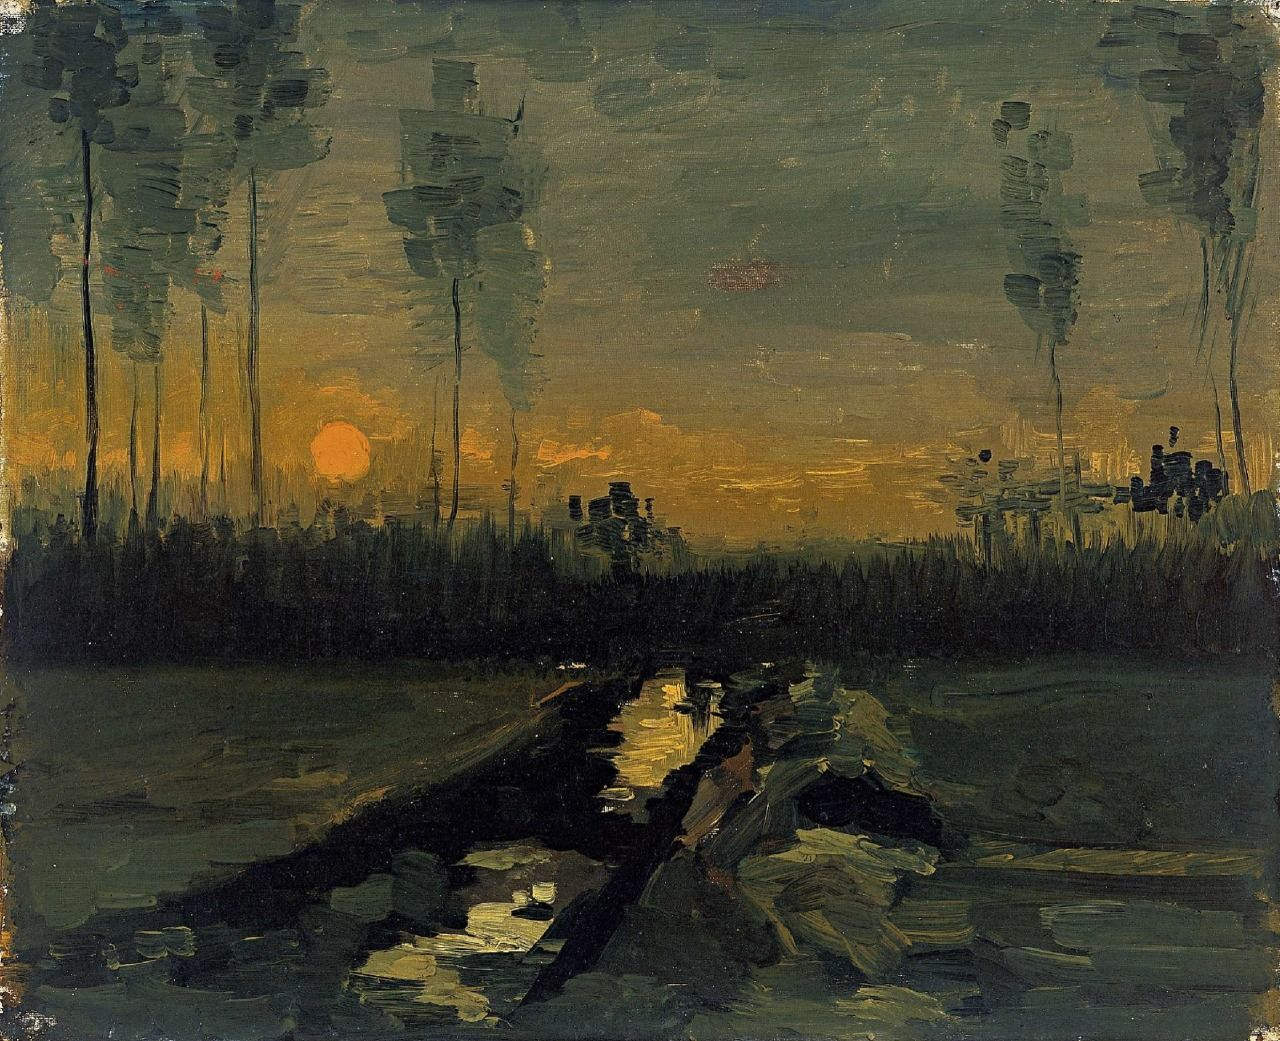 Vincent van Gogh, Evening Landscape, 1885